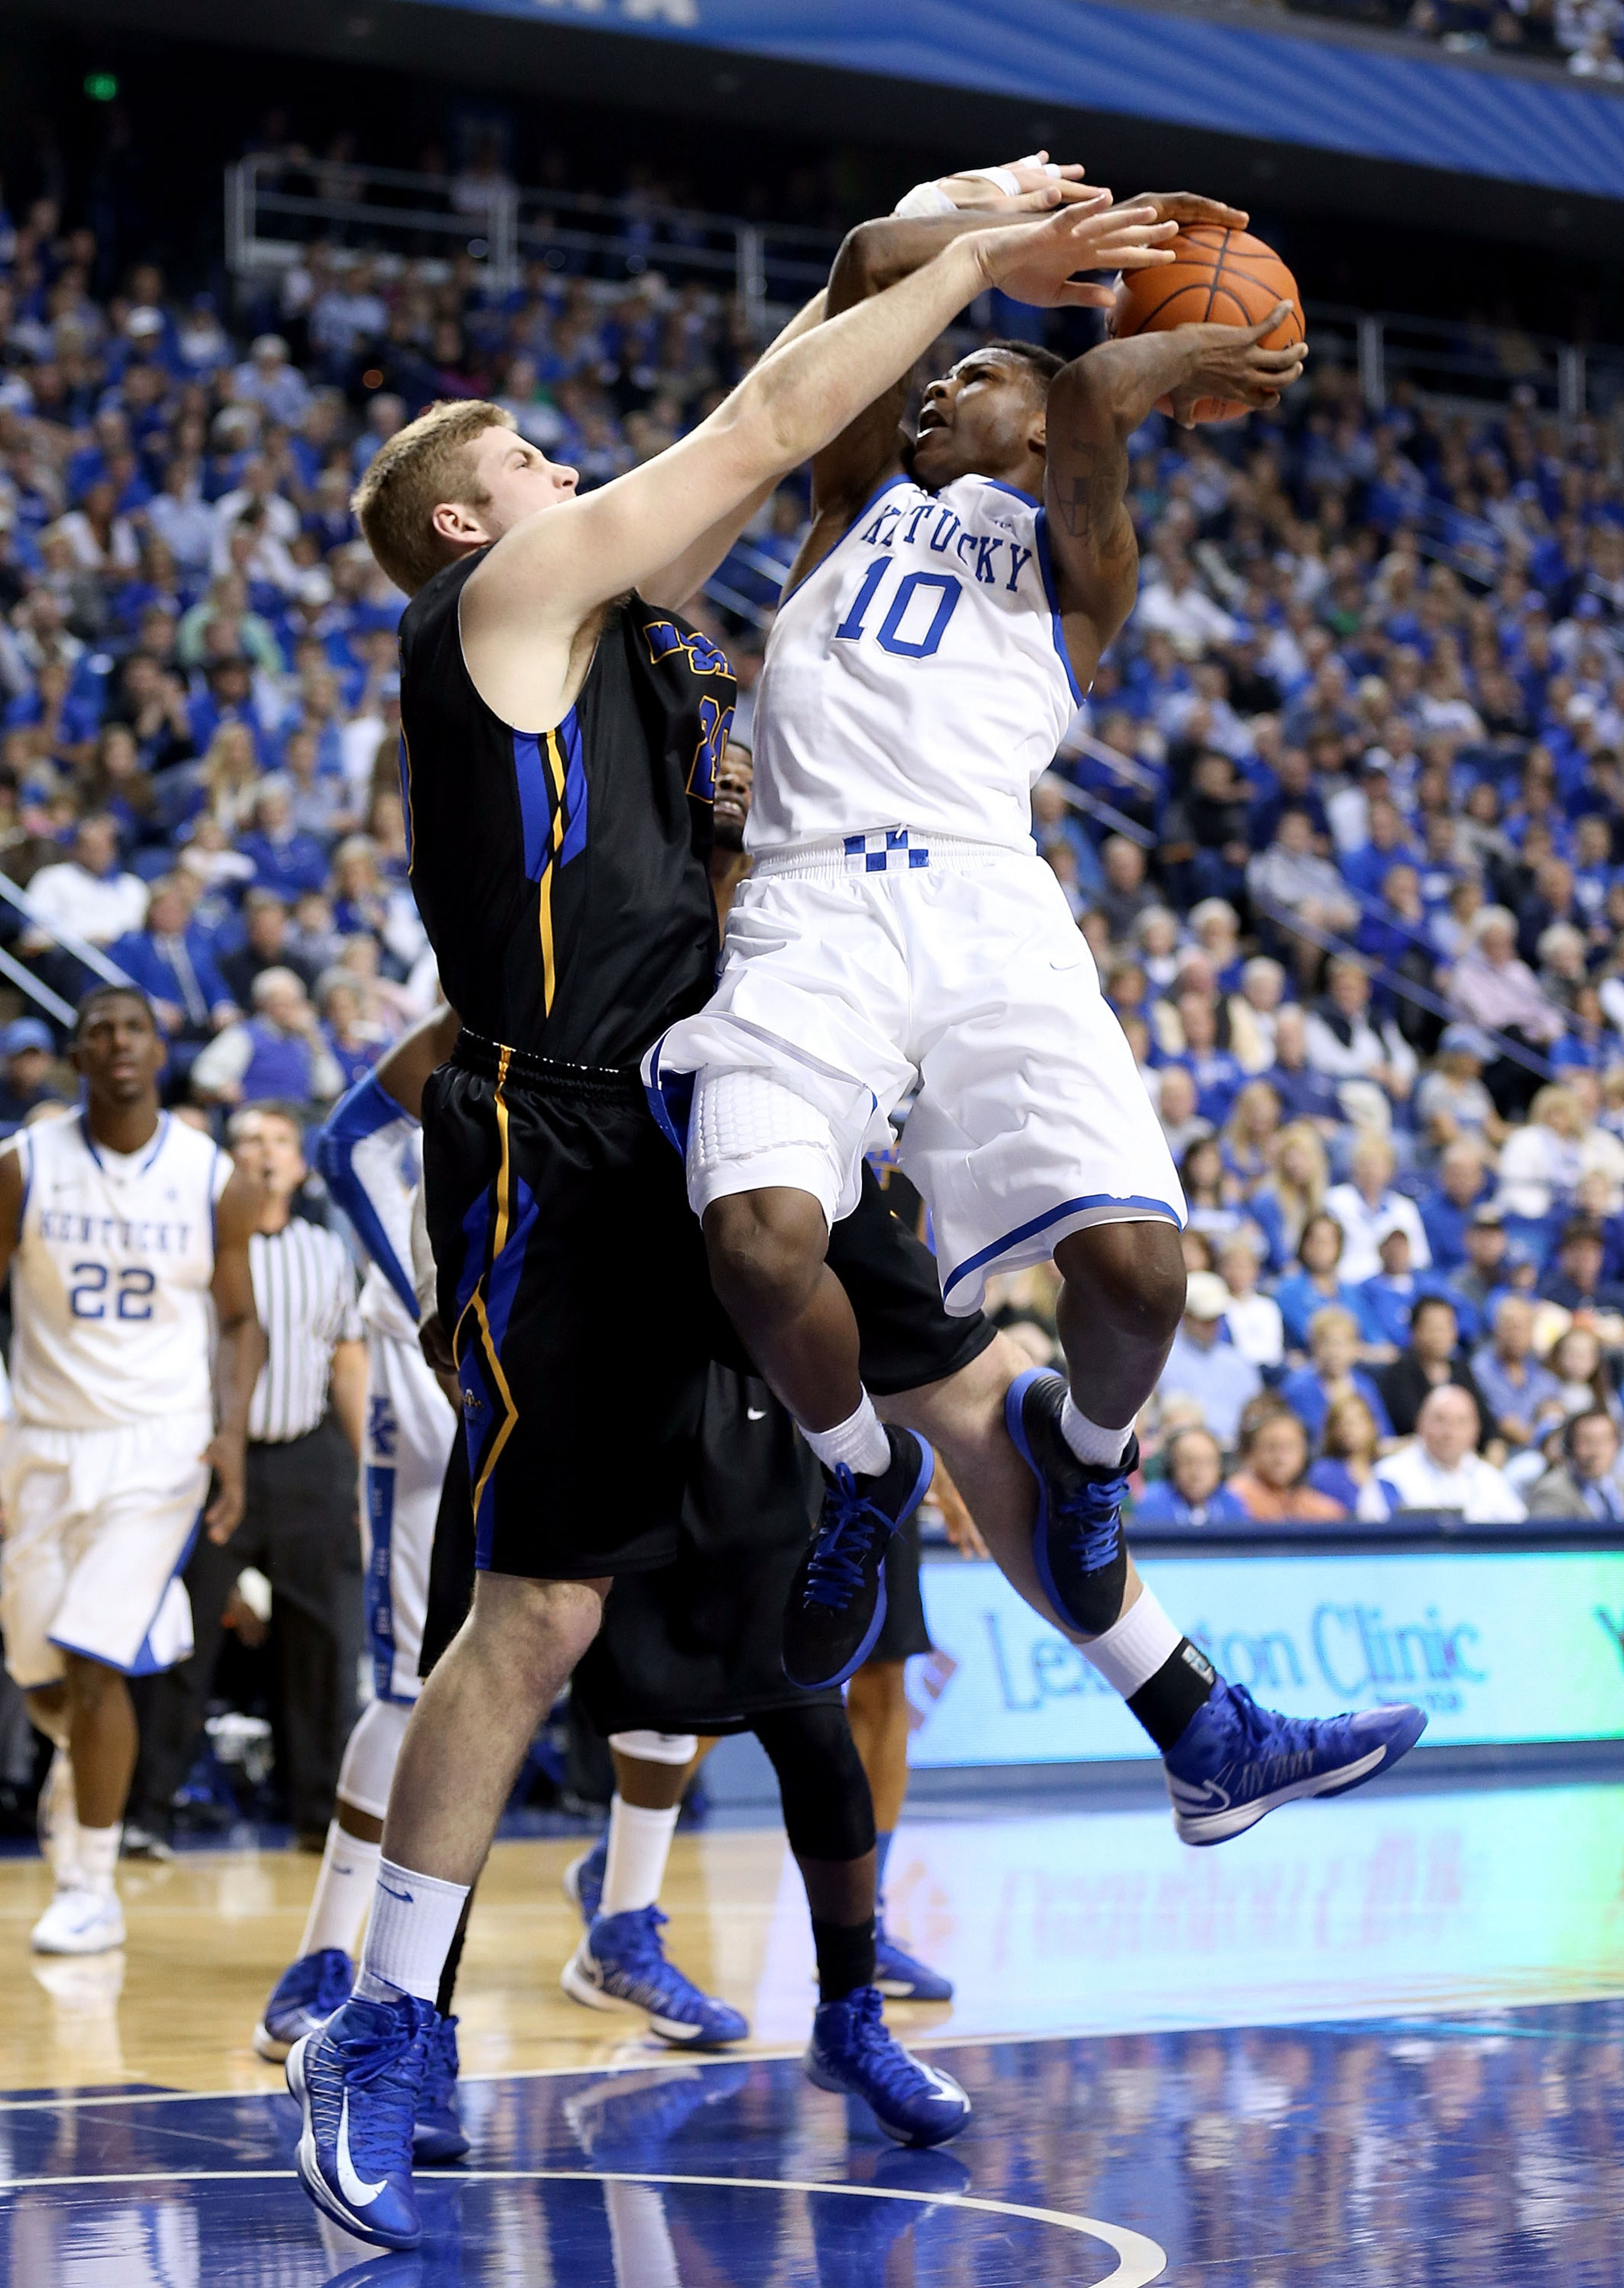 Chad Posthumus drawing a charge against UK.